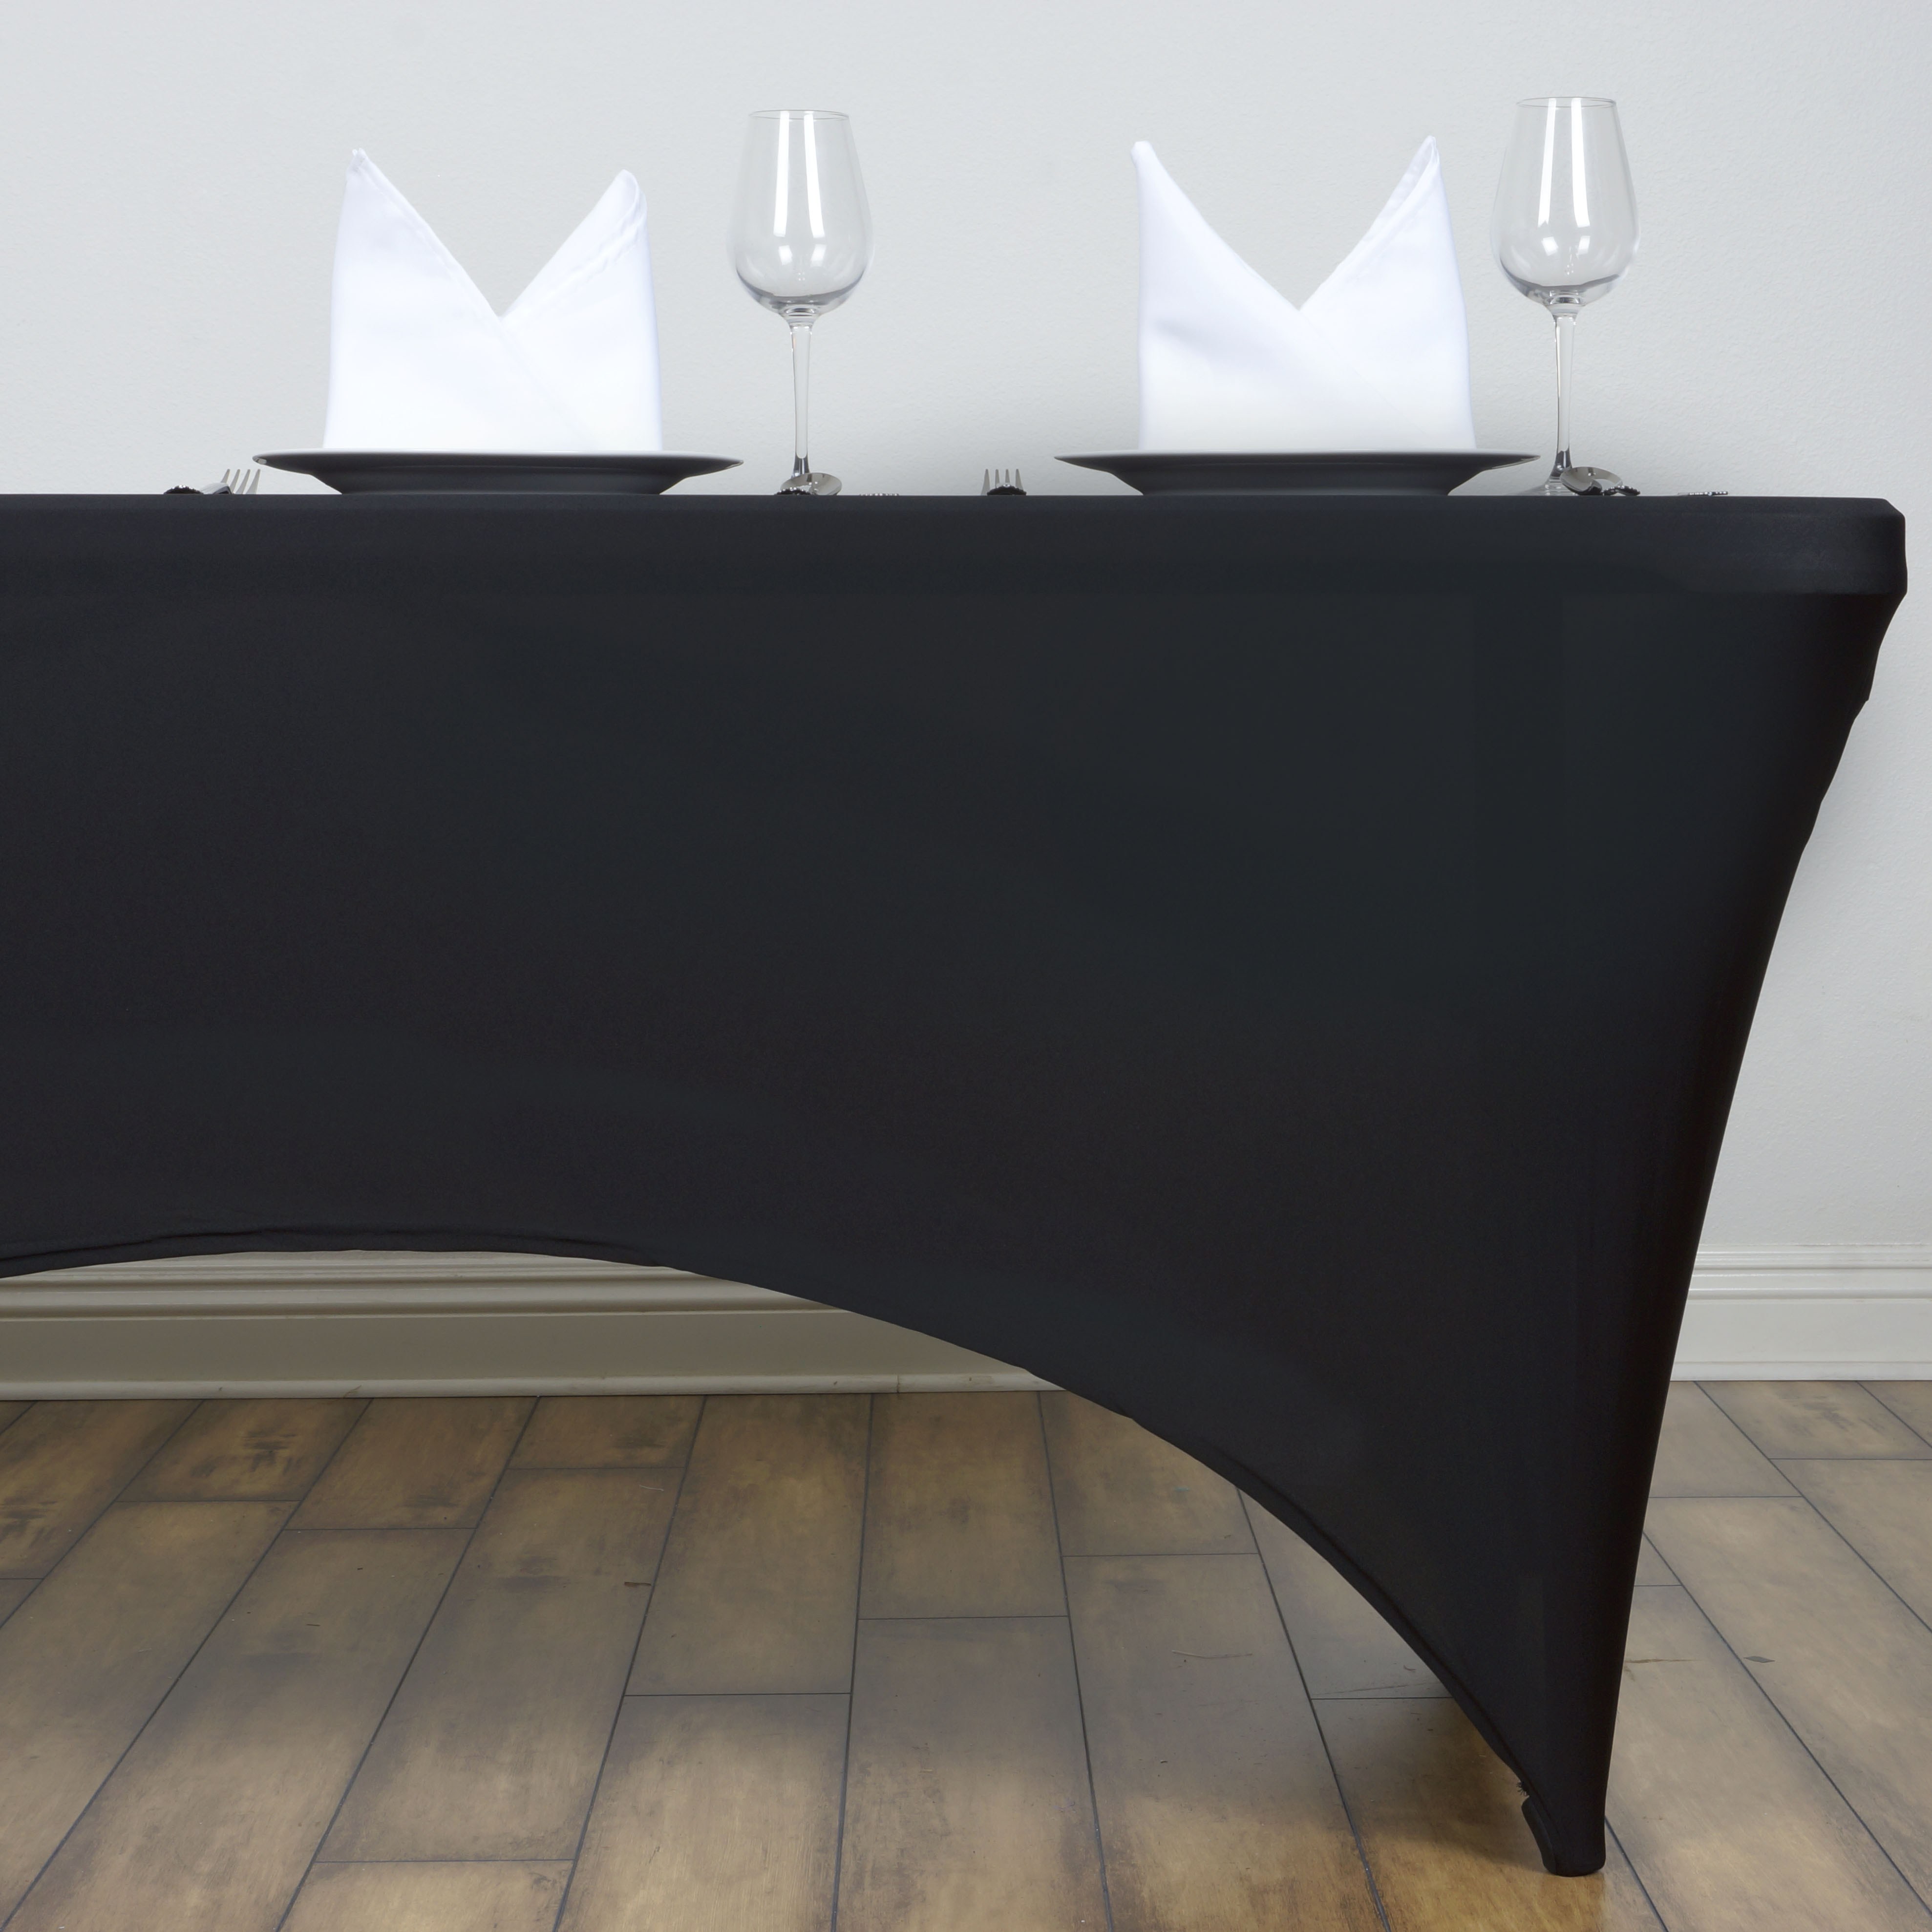 18 pcs 4 ft RECTANGLE SPANDEX STRETCH TABLE COVERS Fitted